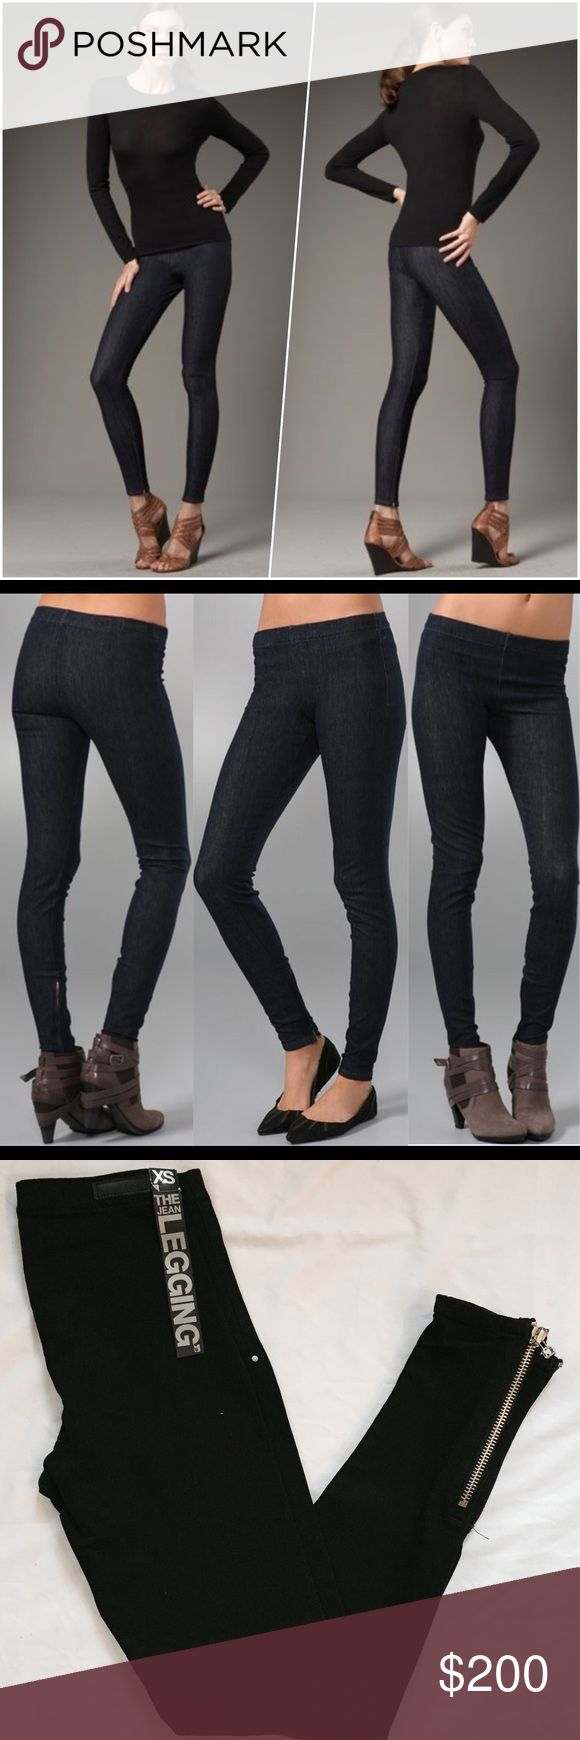 """Joe's The Legging These dark-rinse black denim leggings feature 7"""" ankle zippers and a gathered elastic waistband.  * 8.5"""" rise. 31"""" inseam. * Fabrication: Lightweight denim. * 93% cotton/7% elastam. * Wash cold. * Made in the U.S.A. * Sizing conversion: P=24 XS=25/26 S=26/27 M=28/29 L=30/31 Joe's Jeans Jeans"""